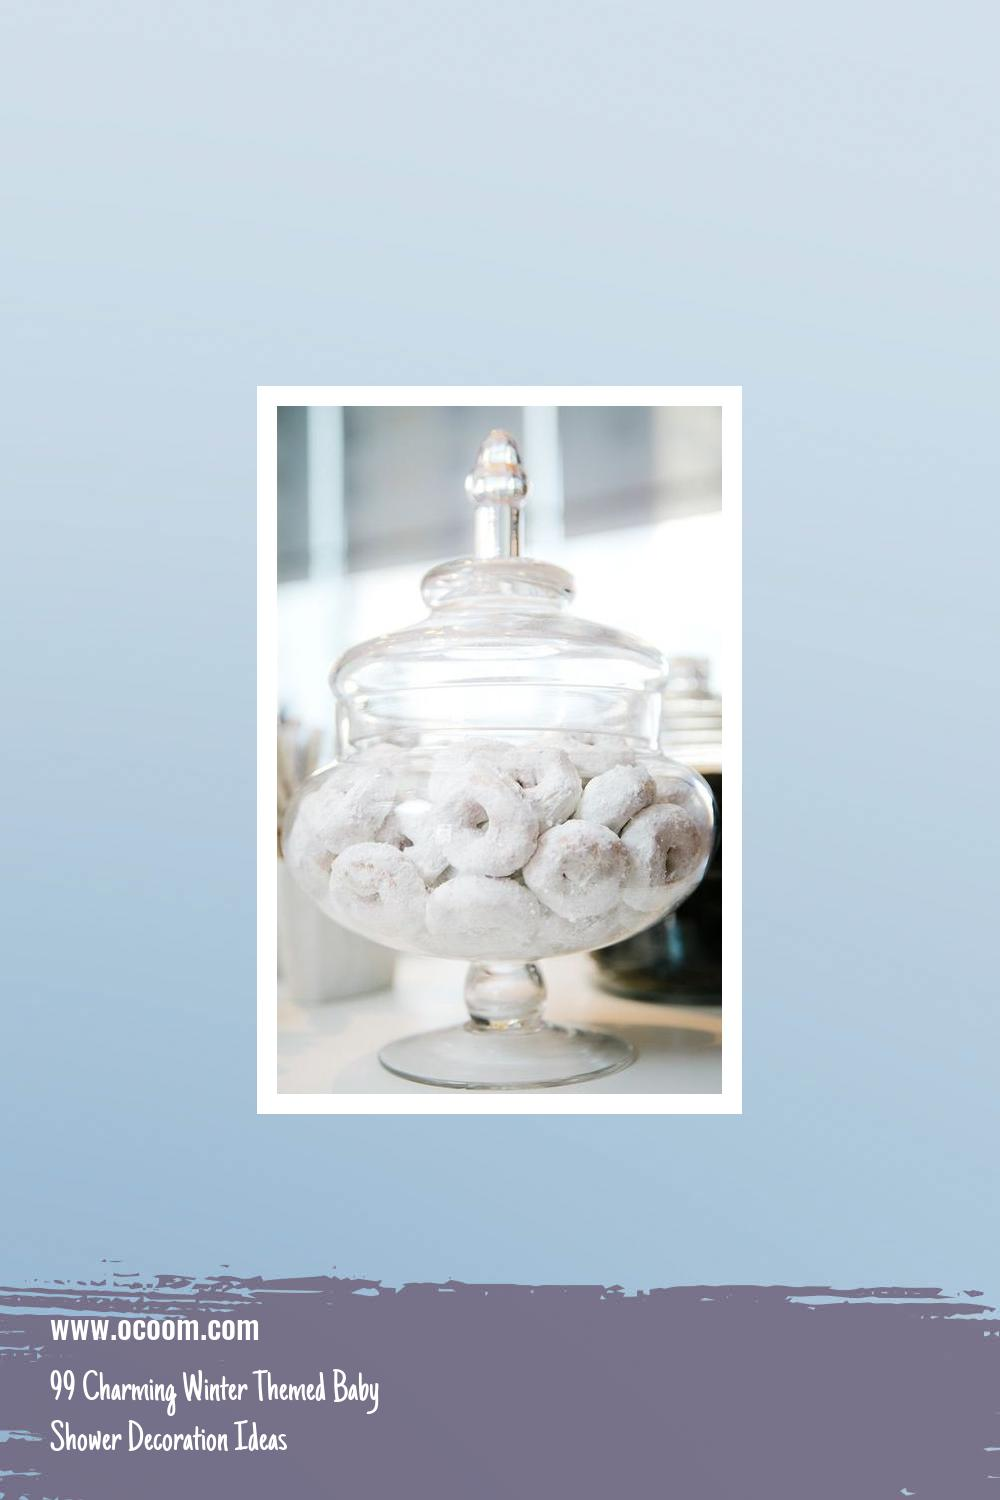 99 Charming Winter Themed Baby Shower Decoration Ideas 9